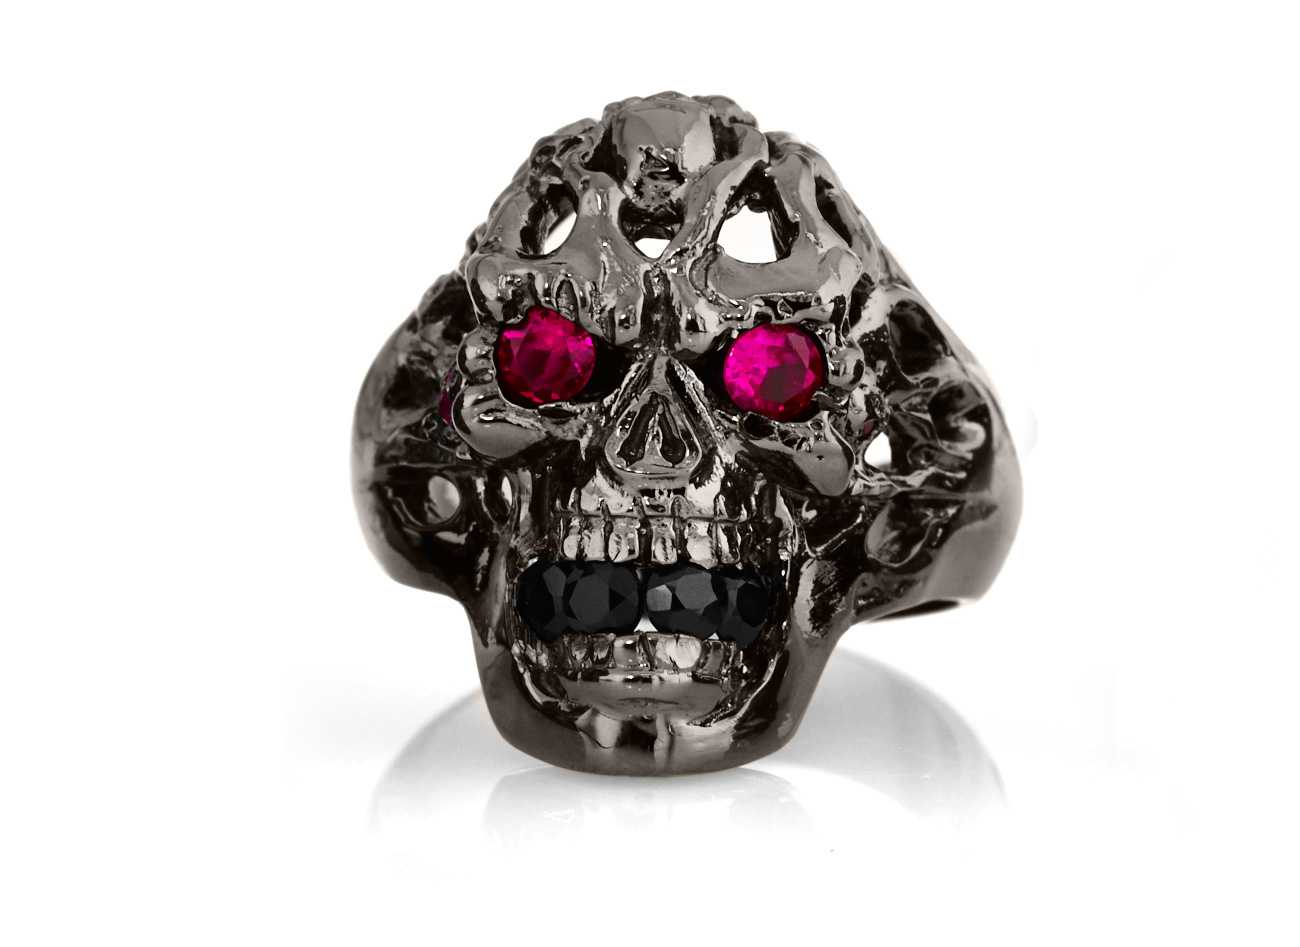 RG114BK-RD-BK Brainiac Ring in Sterling Silver with Red & Black Stones (Black Collection), designed by Steve Soffa